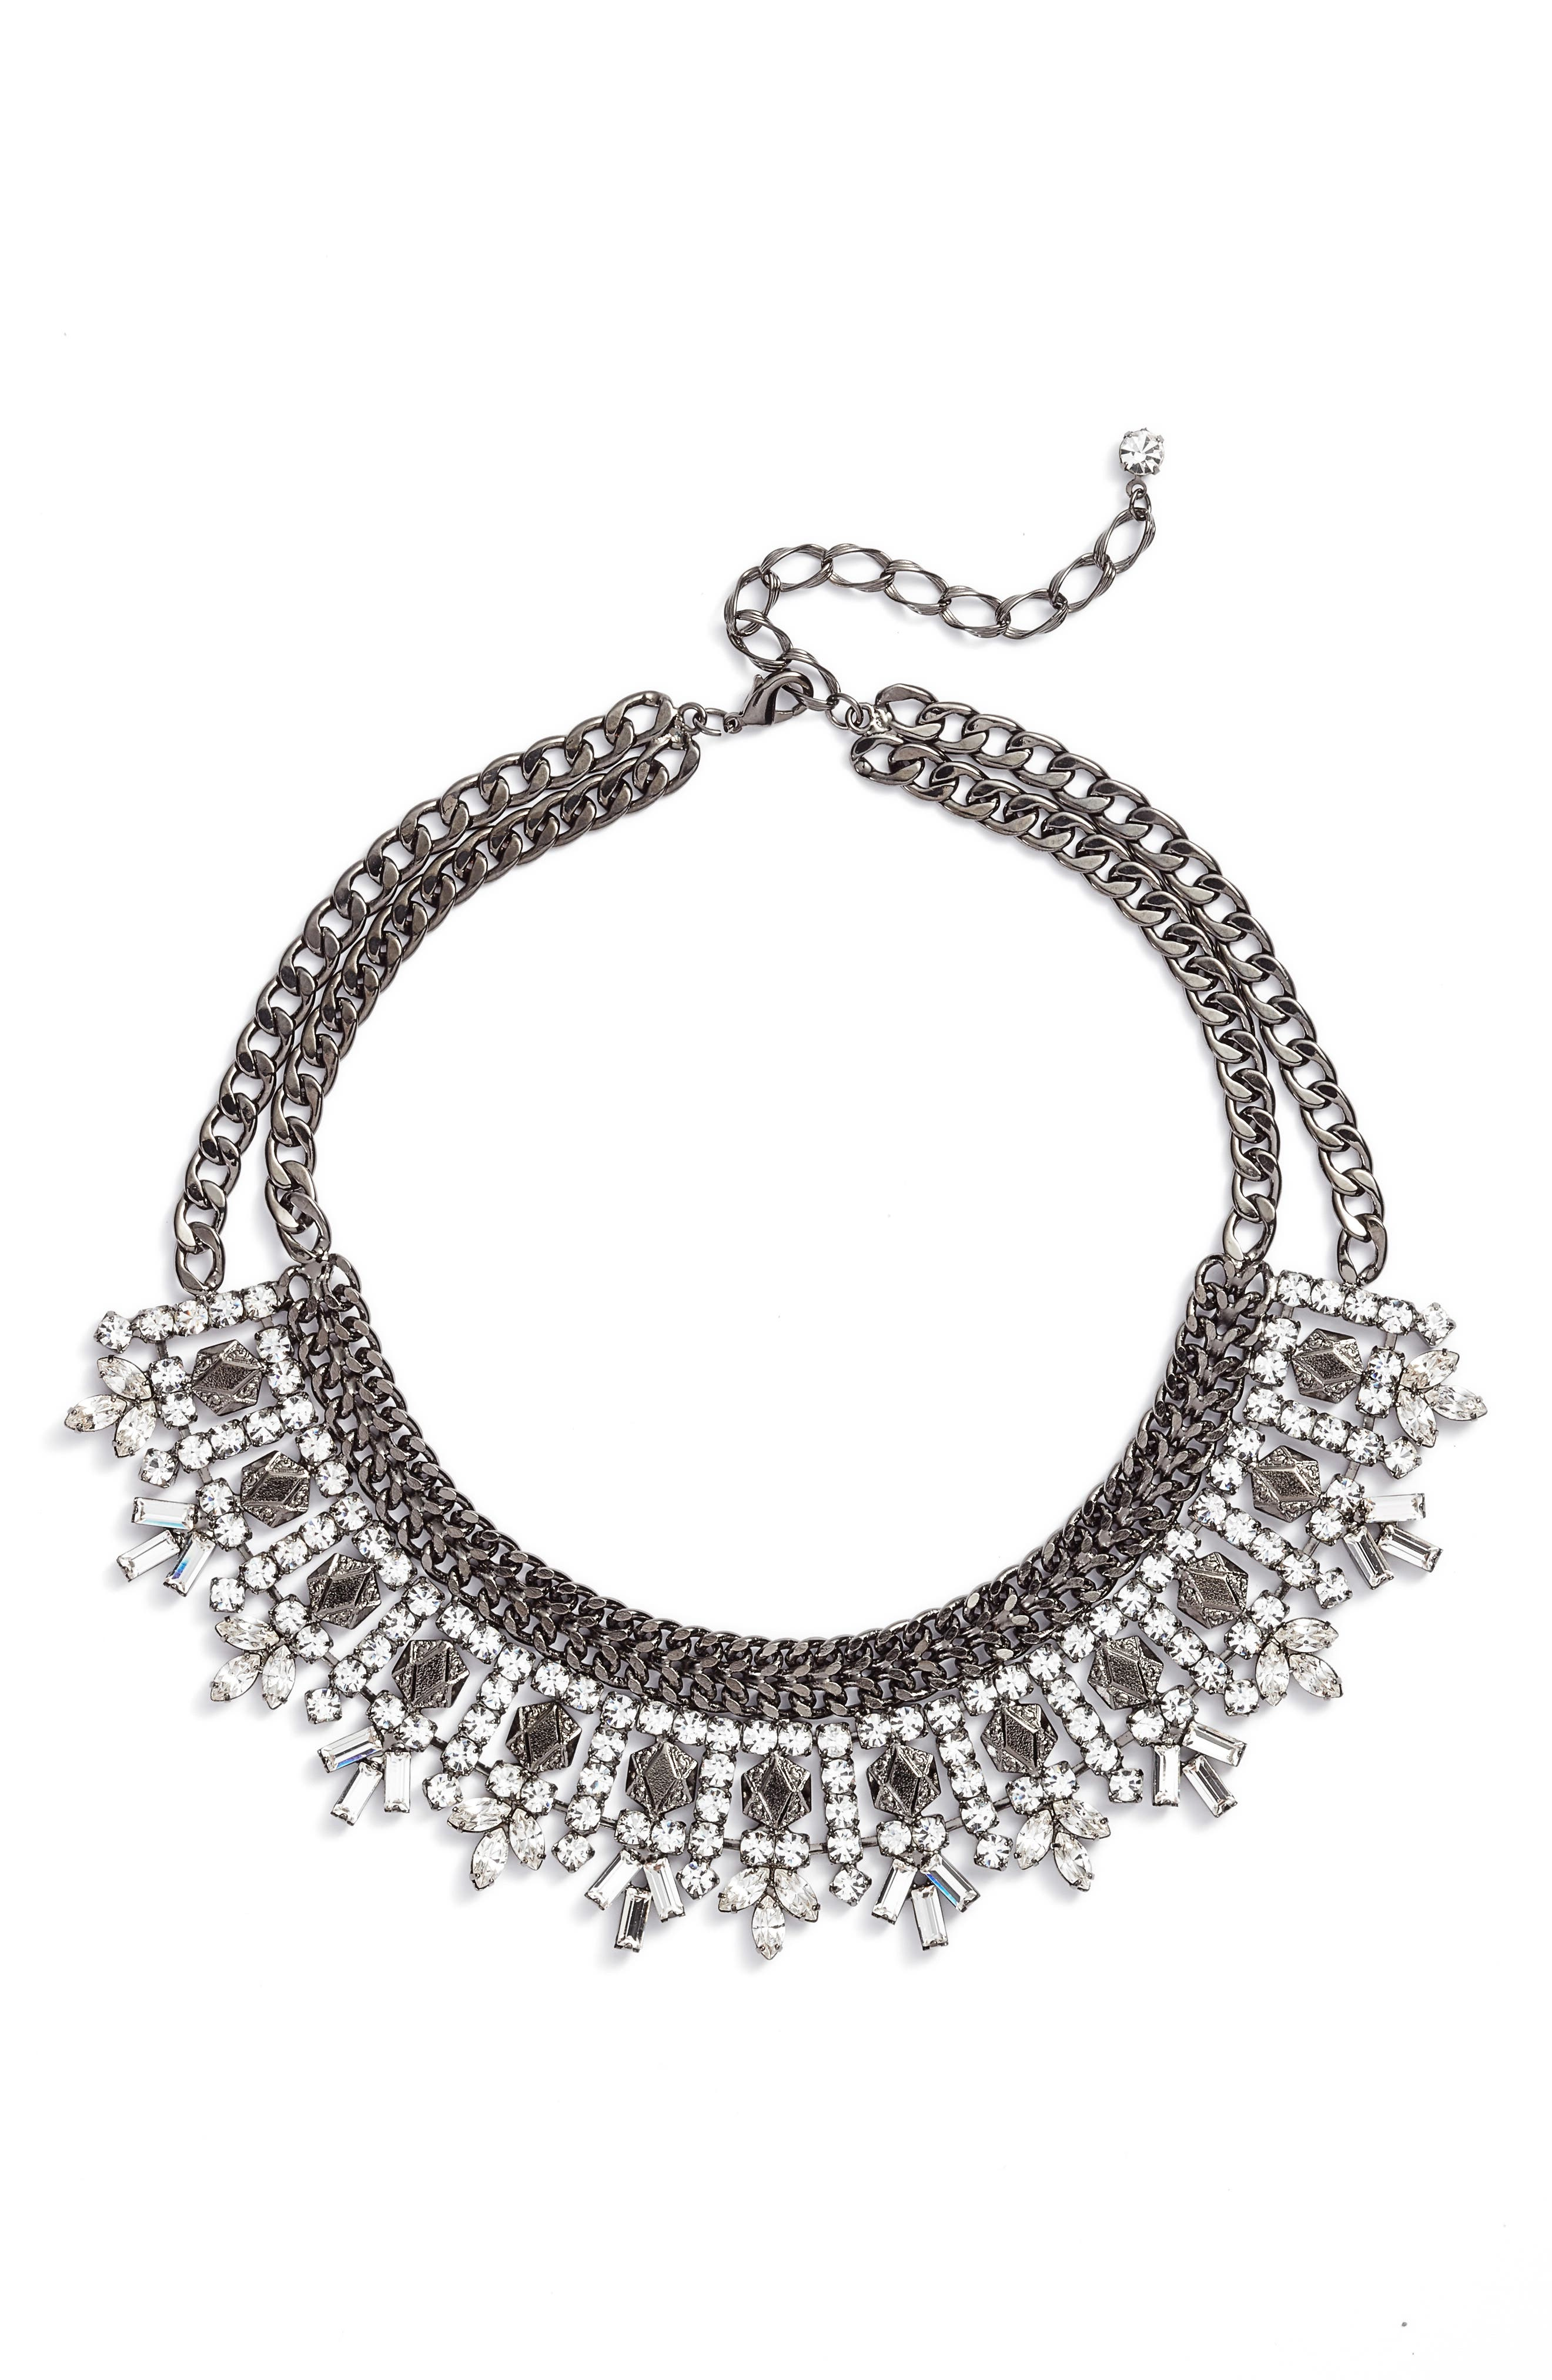 CRISTABELLE Multistone Curb Chain Frontal Necklace